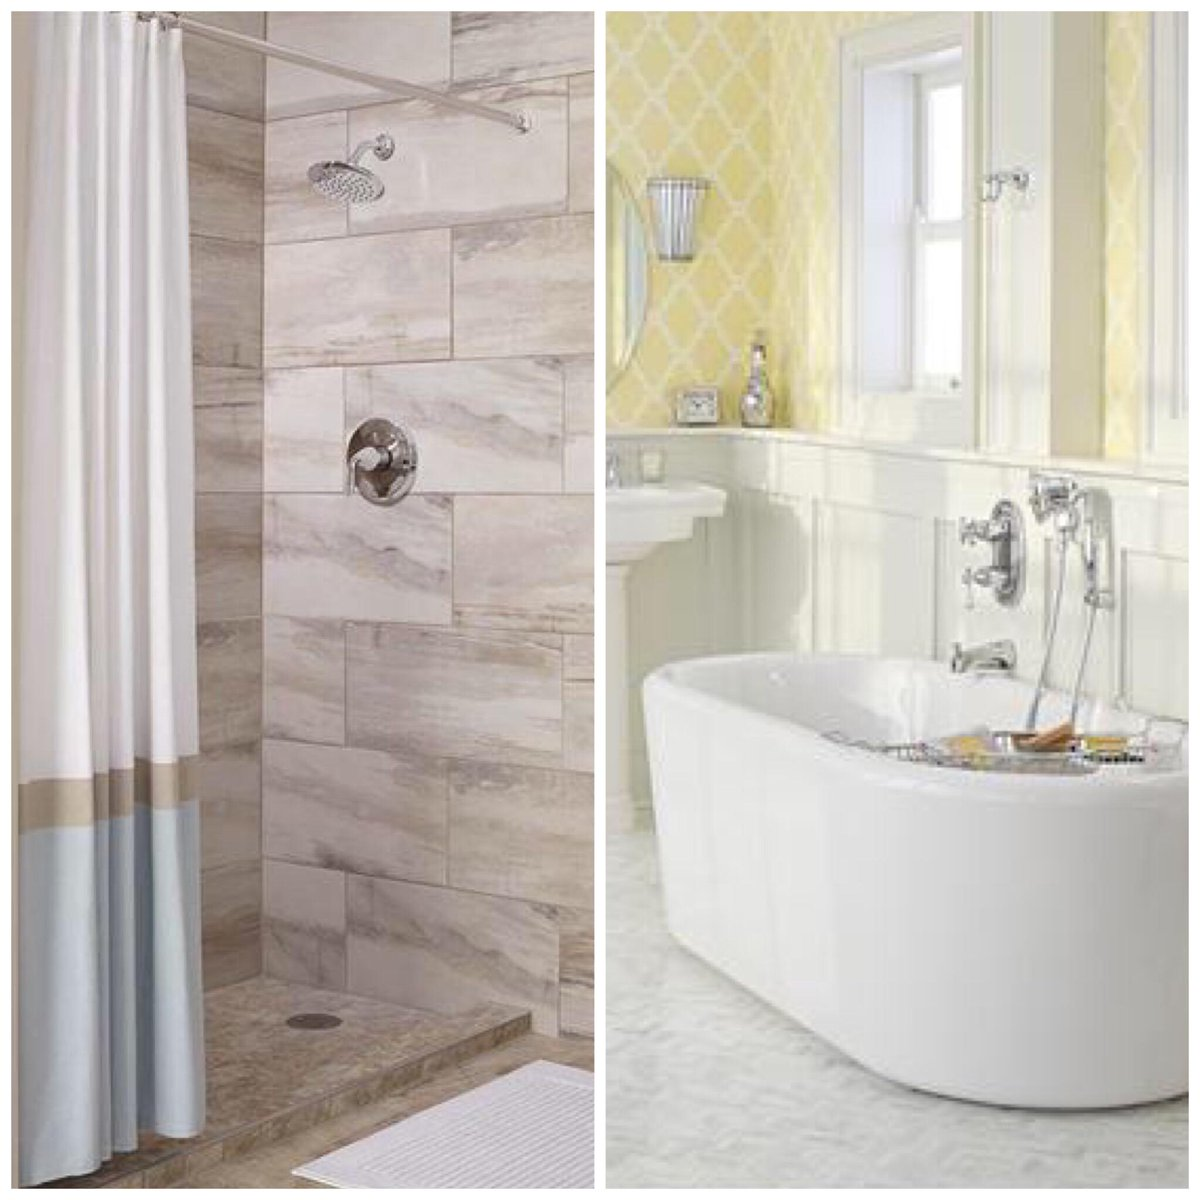 #Shower VS #Bath; Which do you prefer to freshen up in? http://t.co/3kl8IC91As